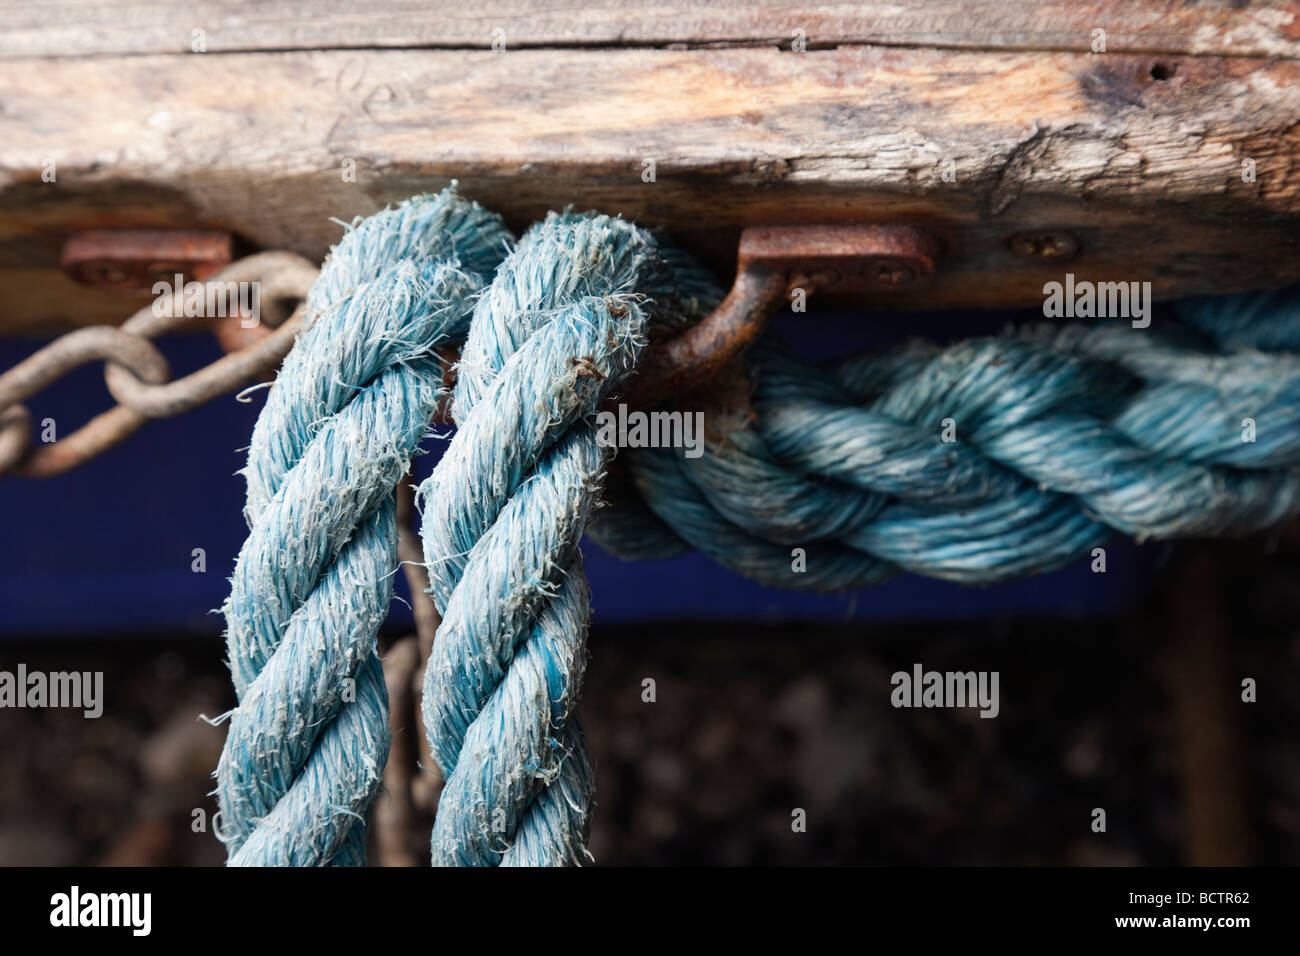 Close up of blue ropes attached to a rusty metal hook on an old boat - Stock Image